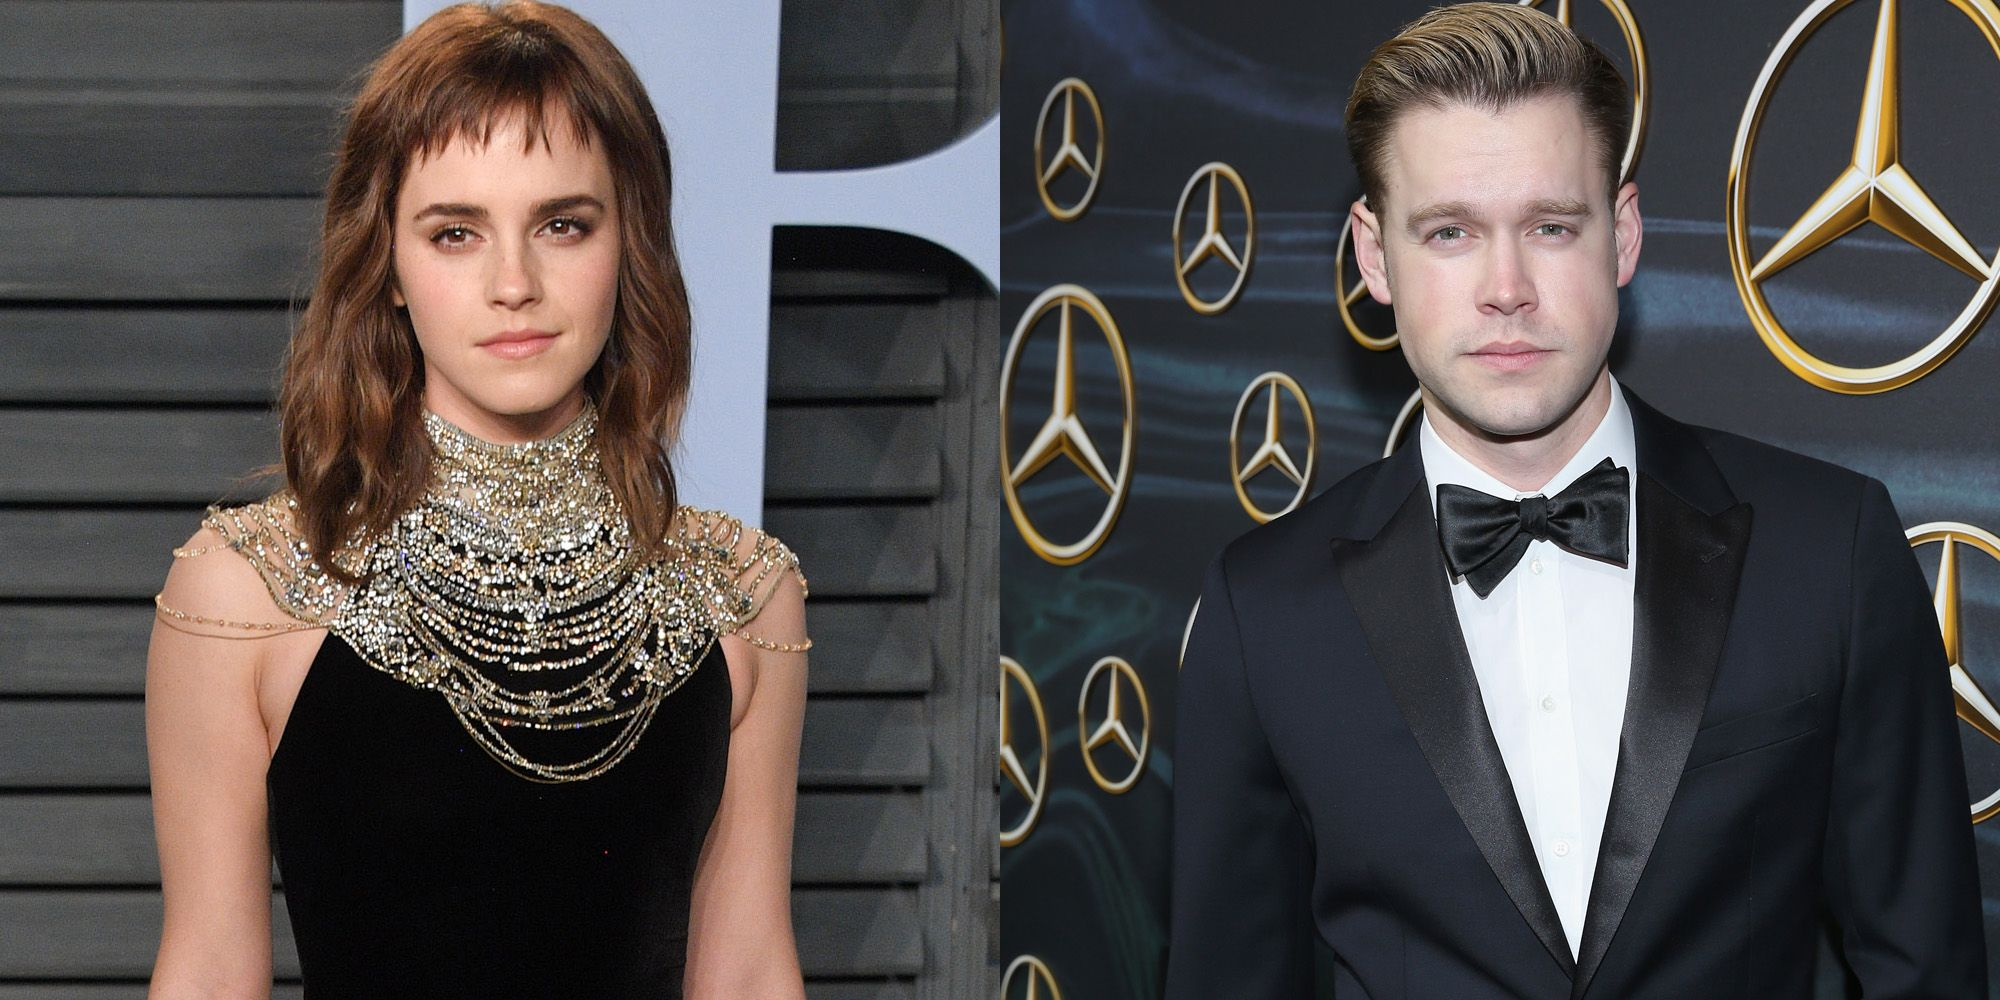 Emma Watson Reportedly Split From Former Glee Star Chord Overstreet